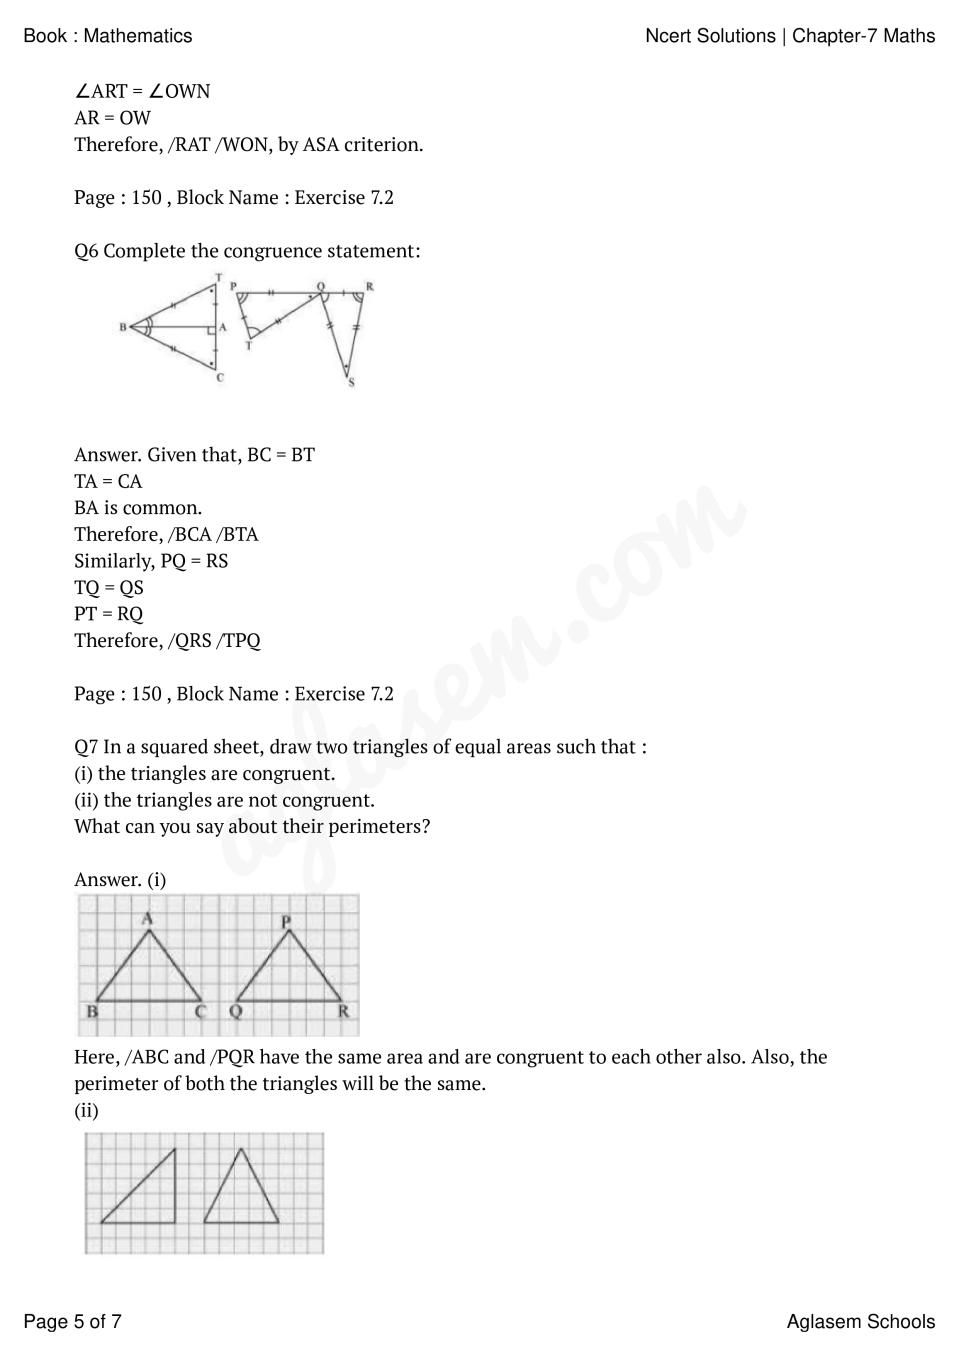 medium resolution of NCERT Solutions for Class 7 Maths Chapter 7 Congruence of Triangles    AglaSem Schools